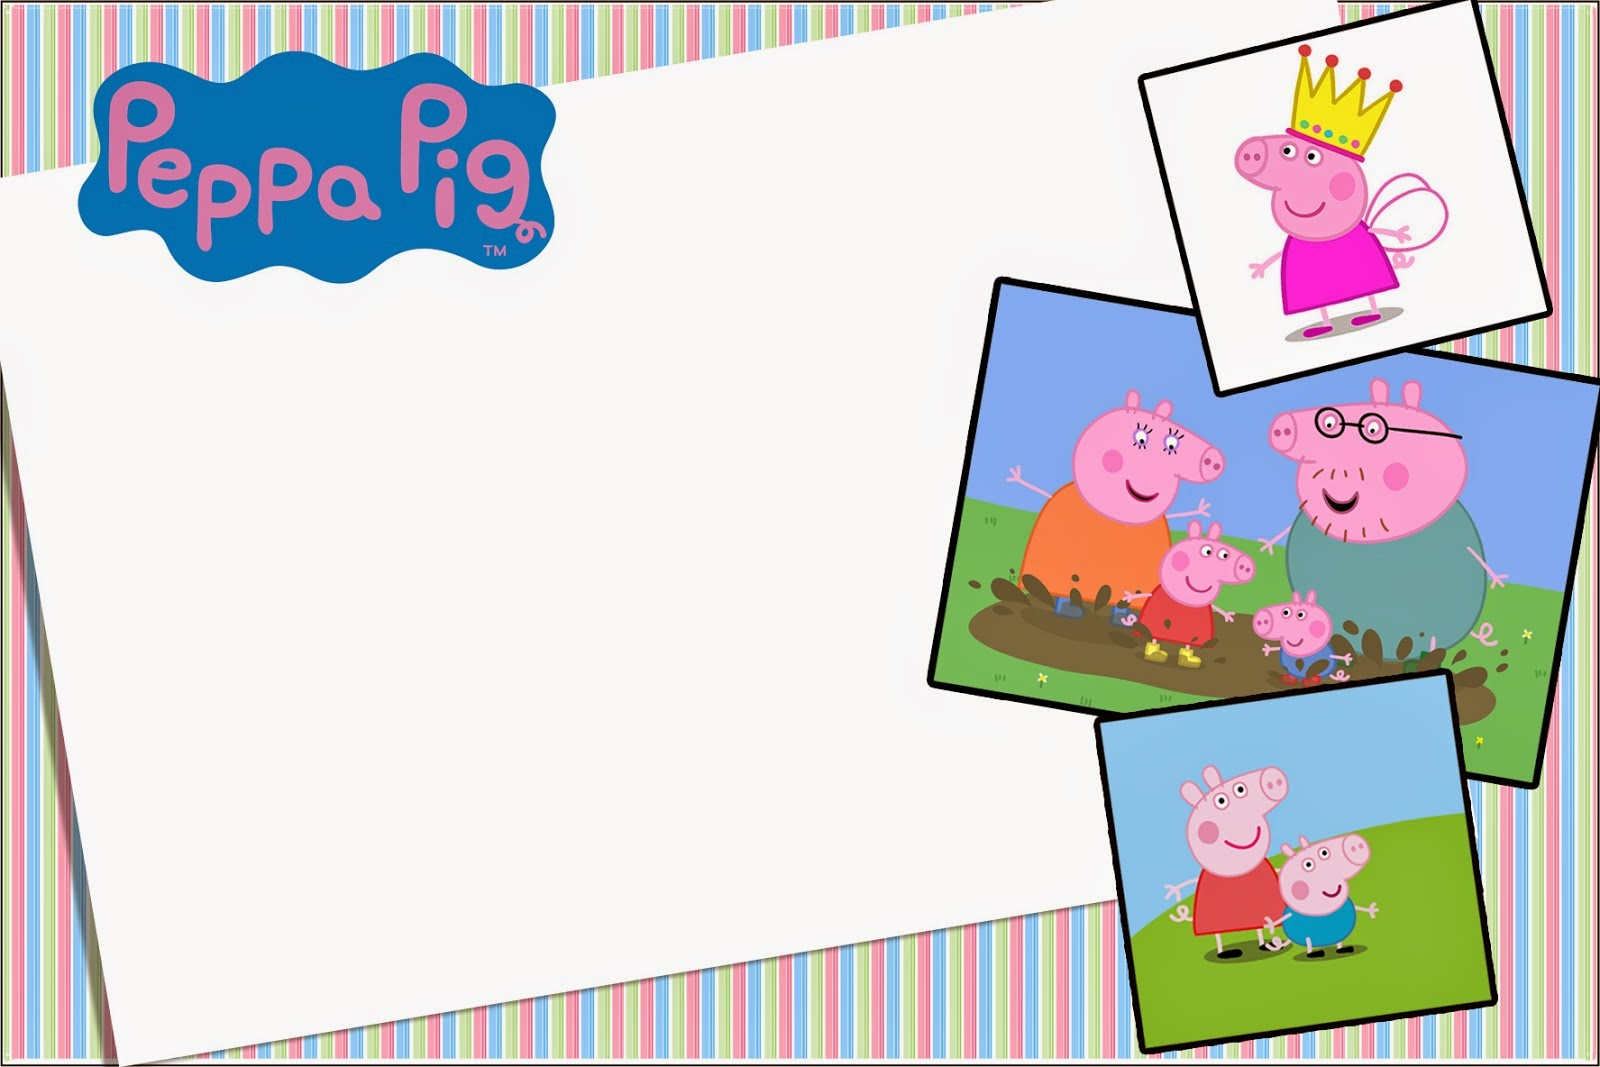 Peppa Pig Frame Wallpapers High Quality | Download Free